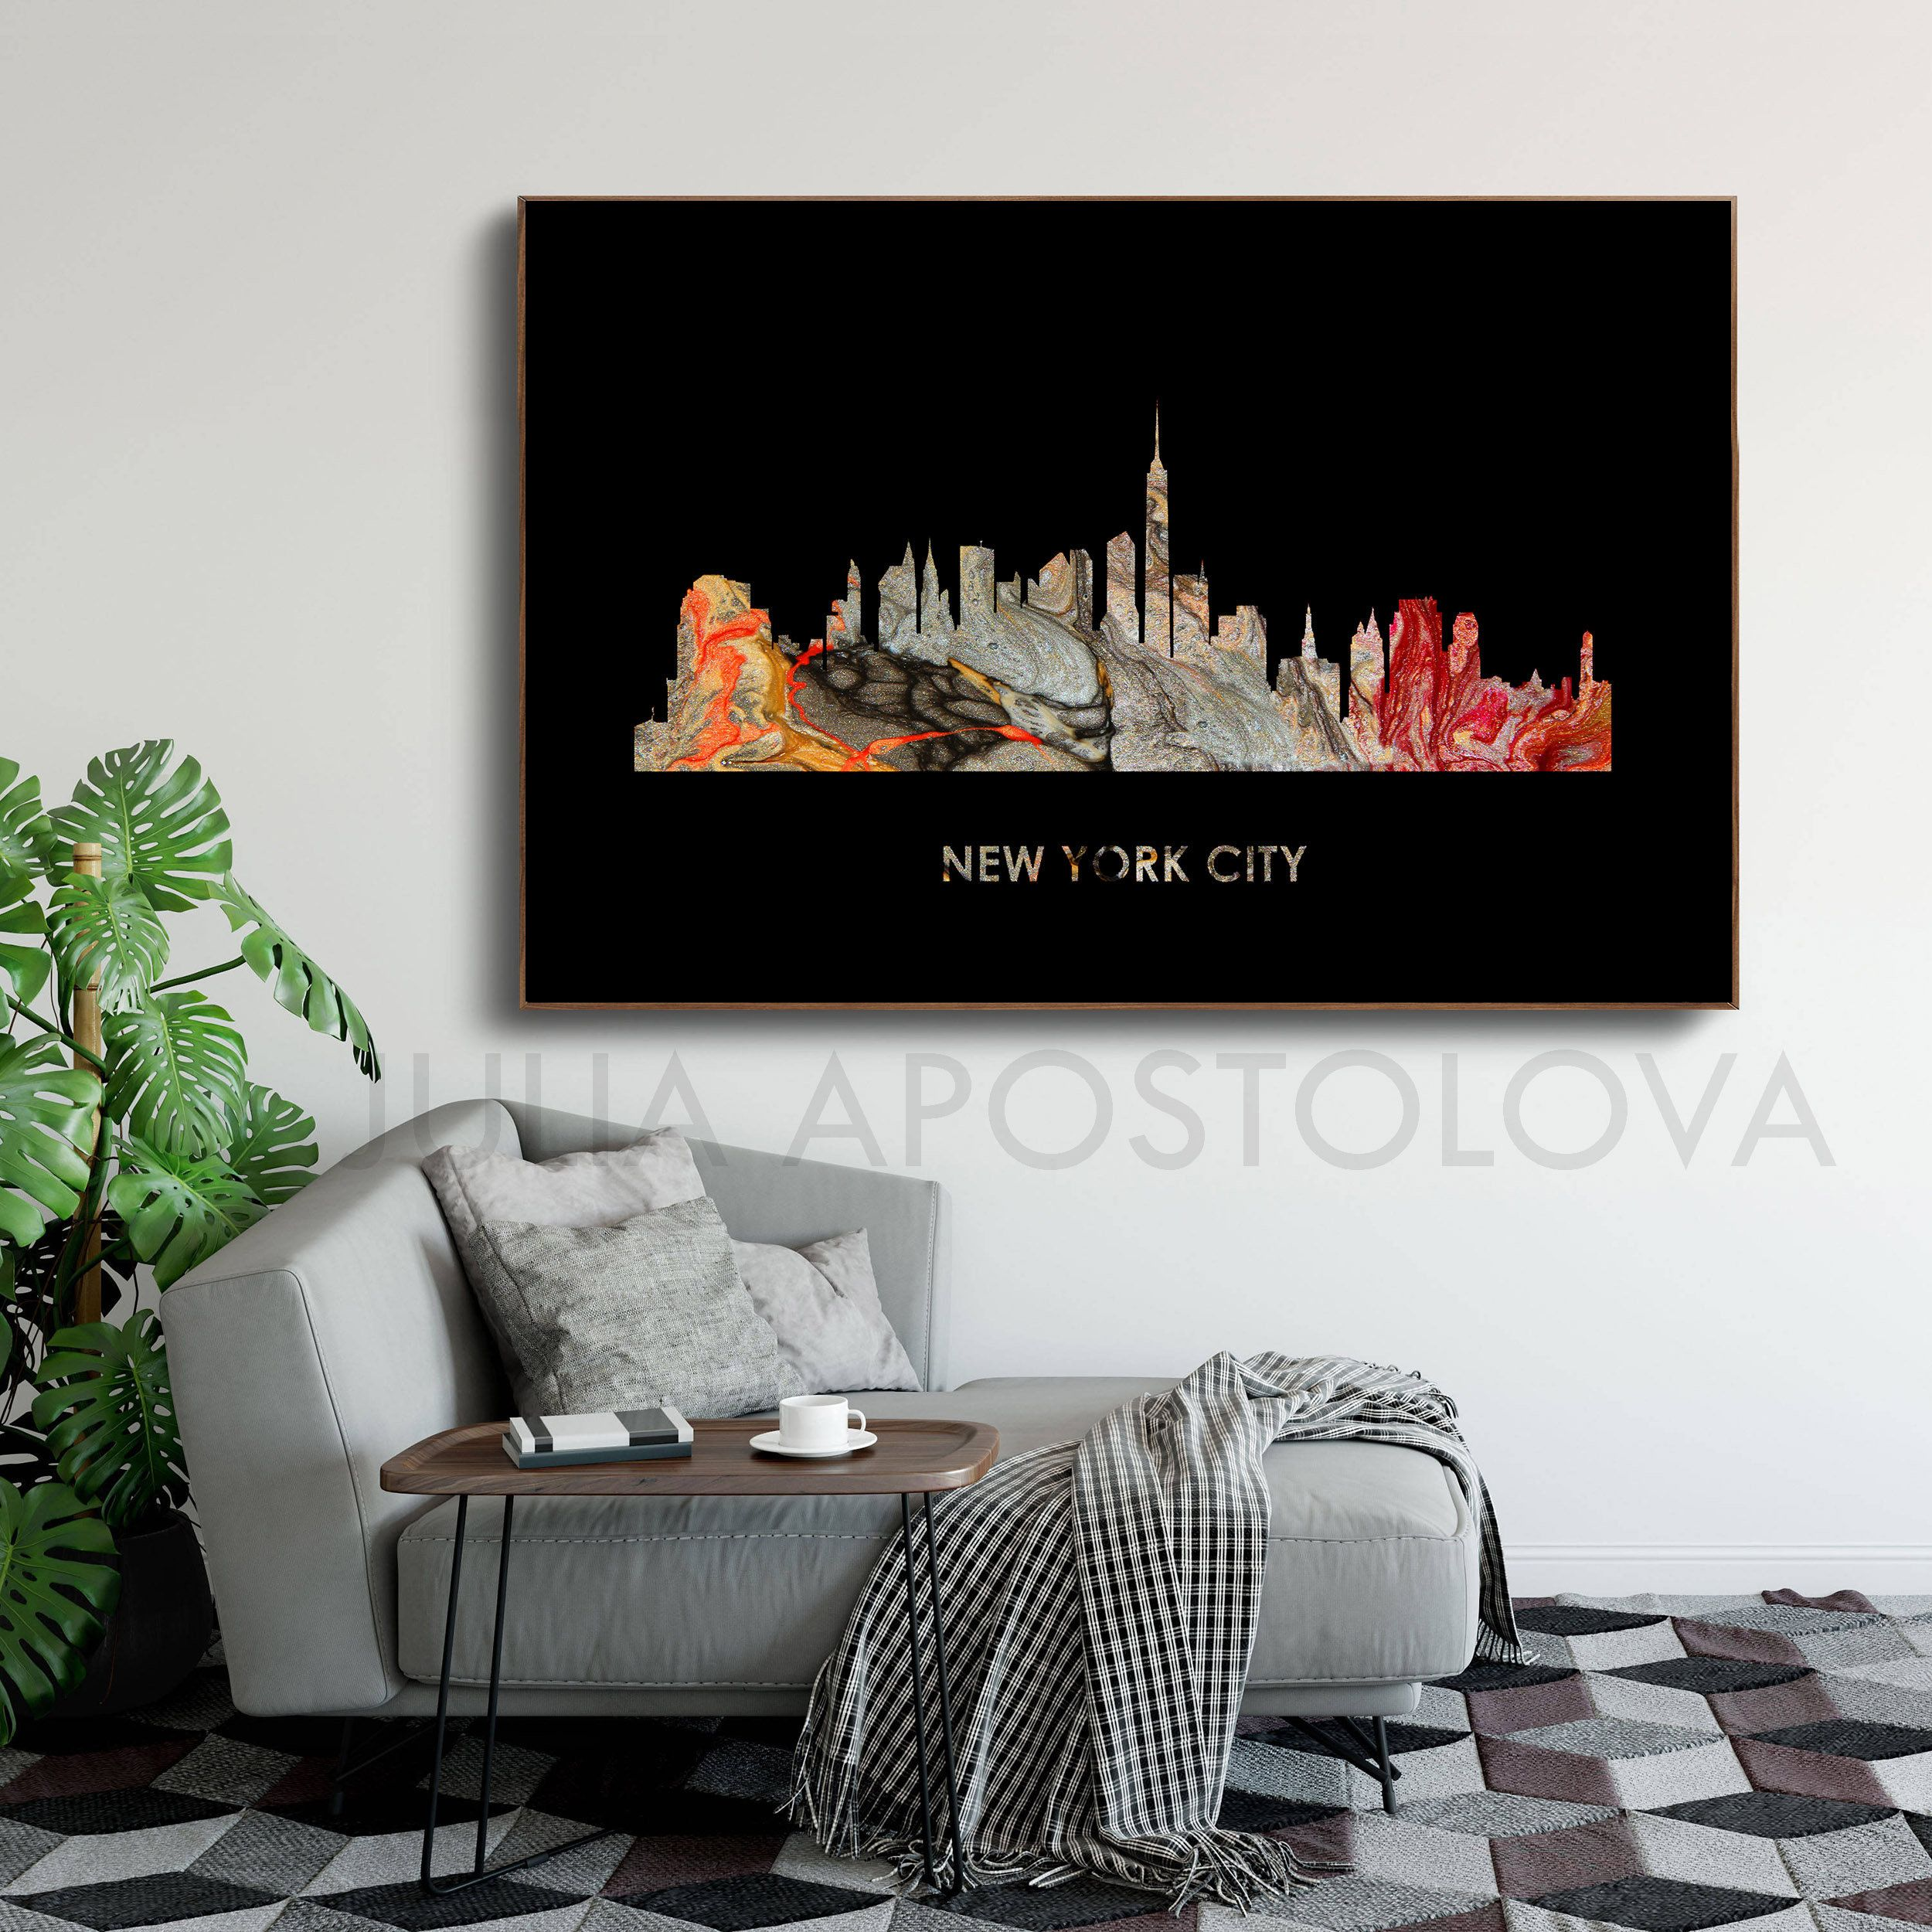 Upto 48 #Newyork #Canvas #Wallart #Art #Travelart #Skyline